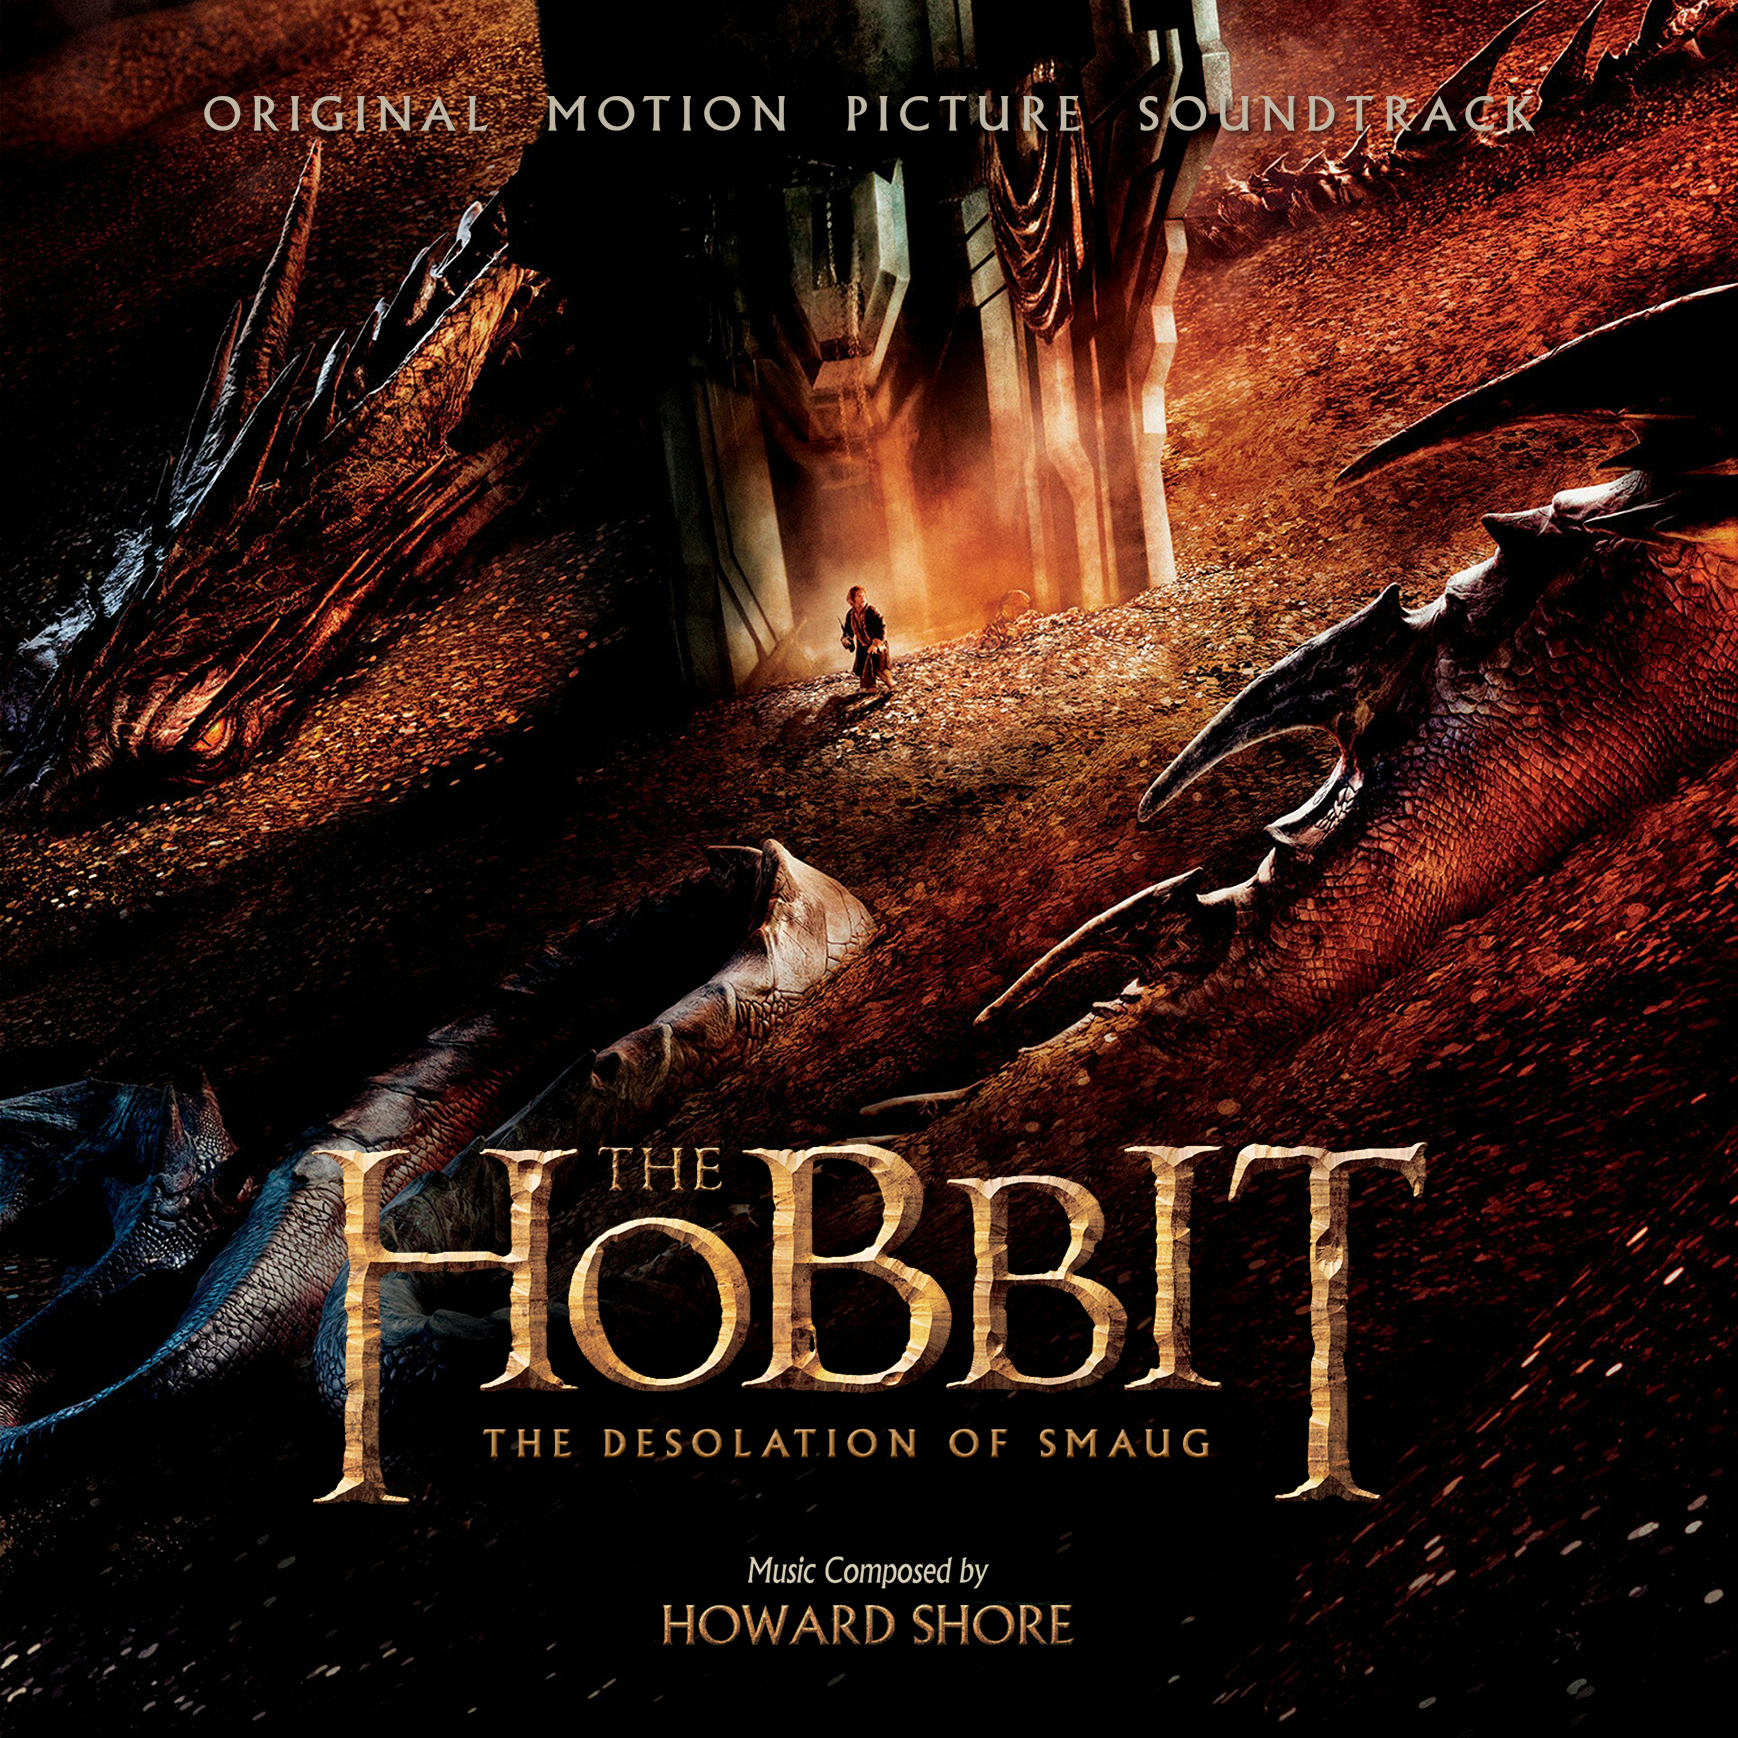 The hobbit soundtrack